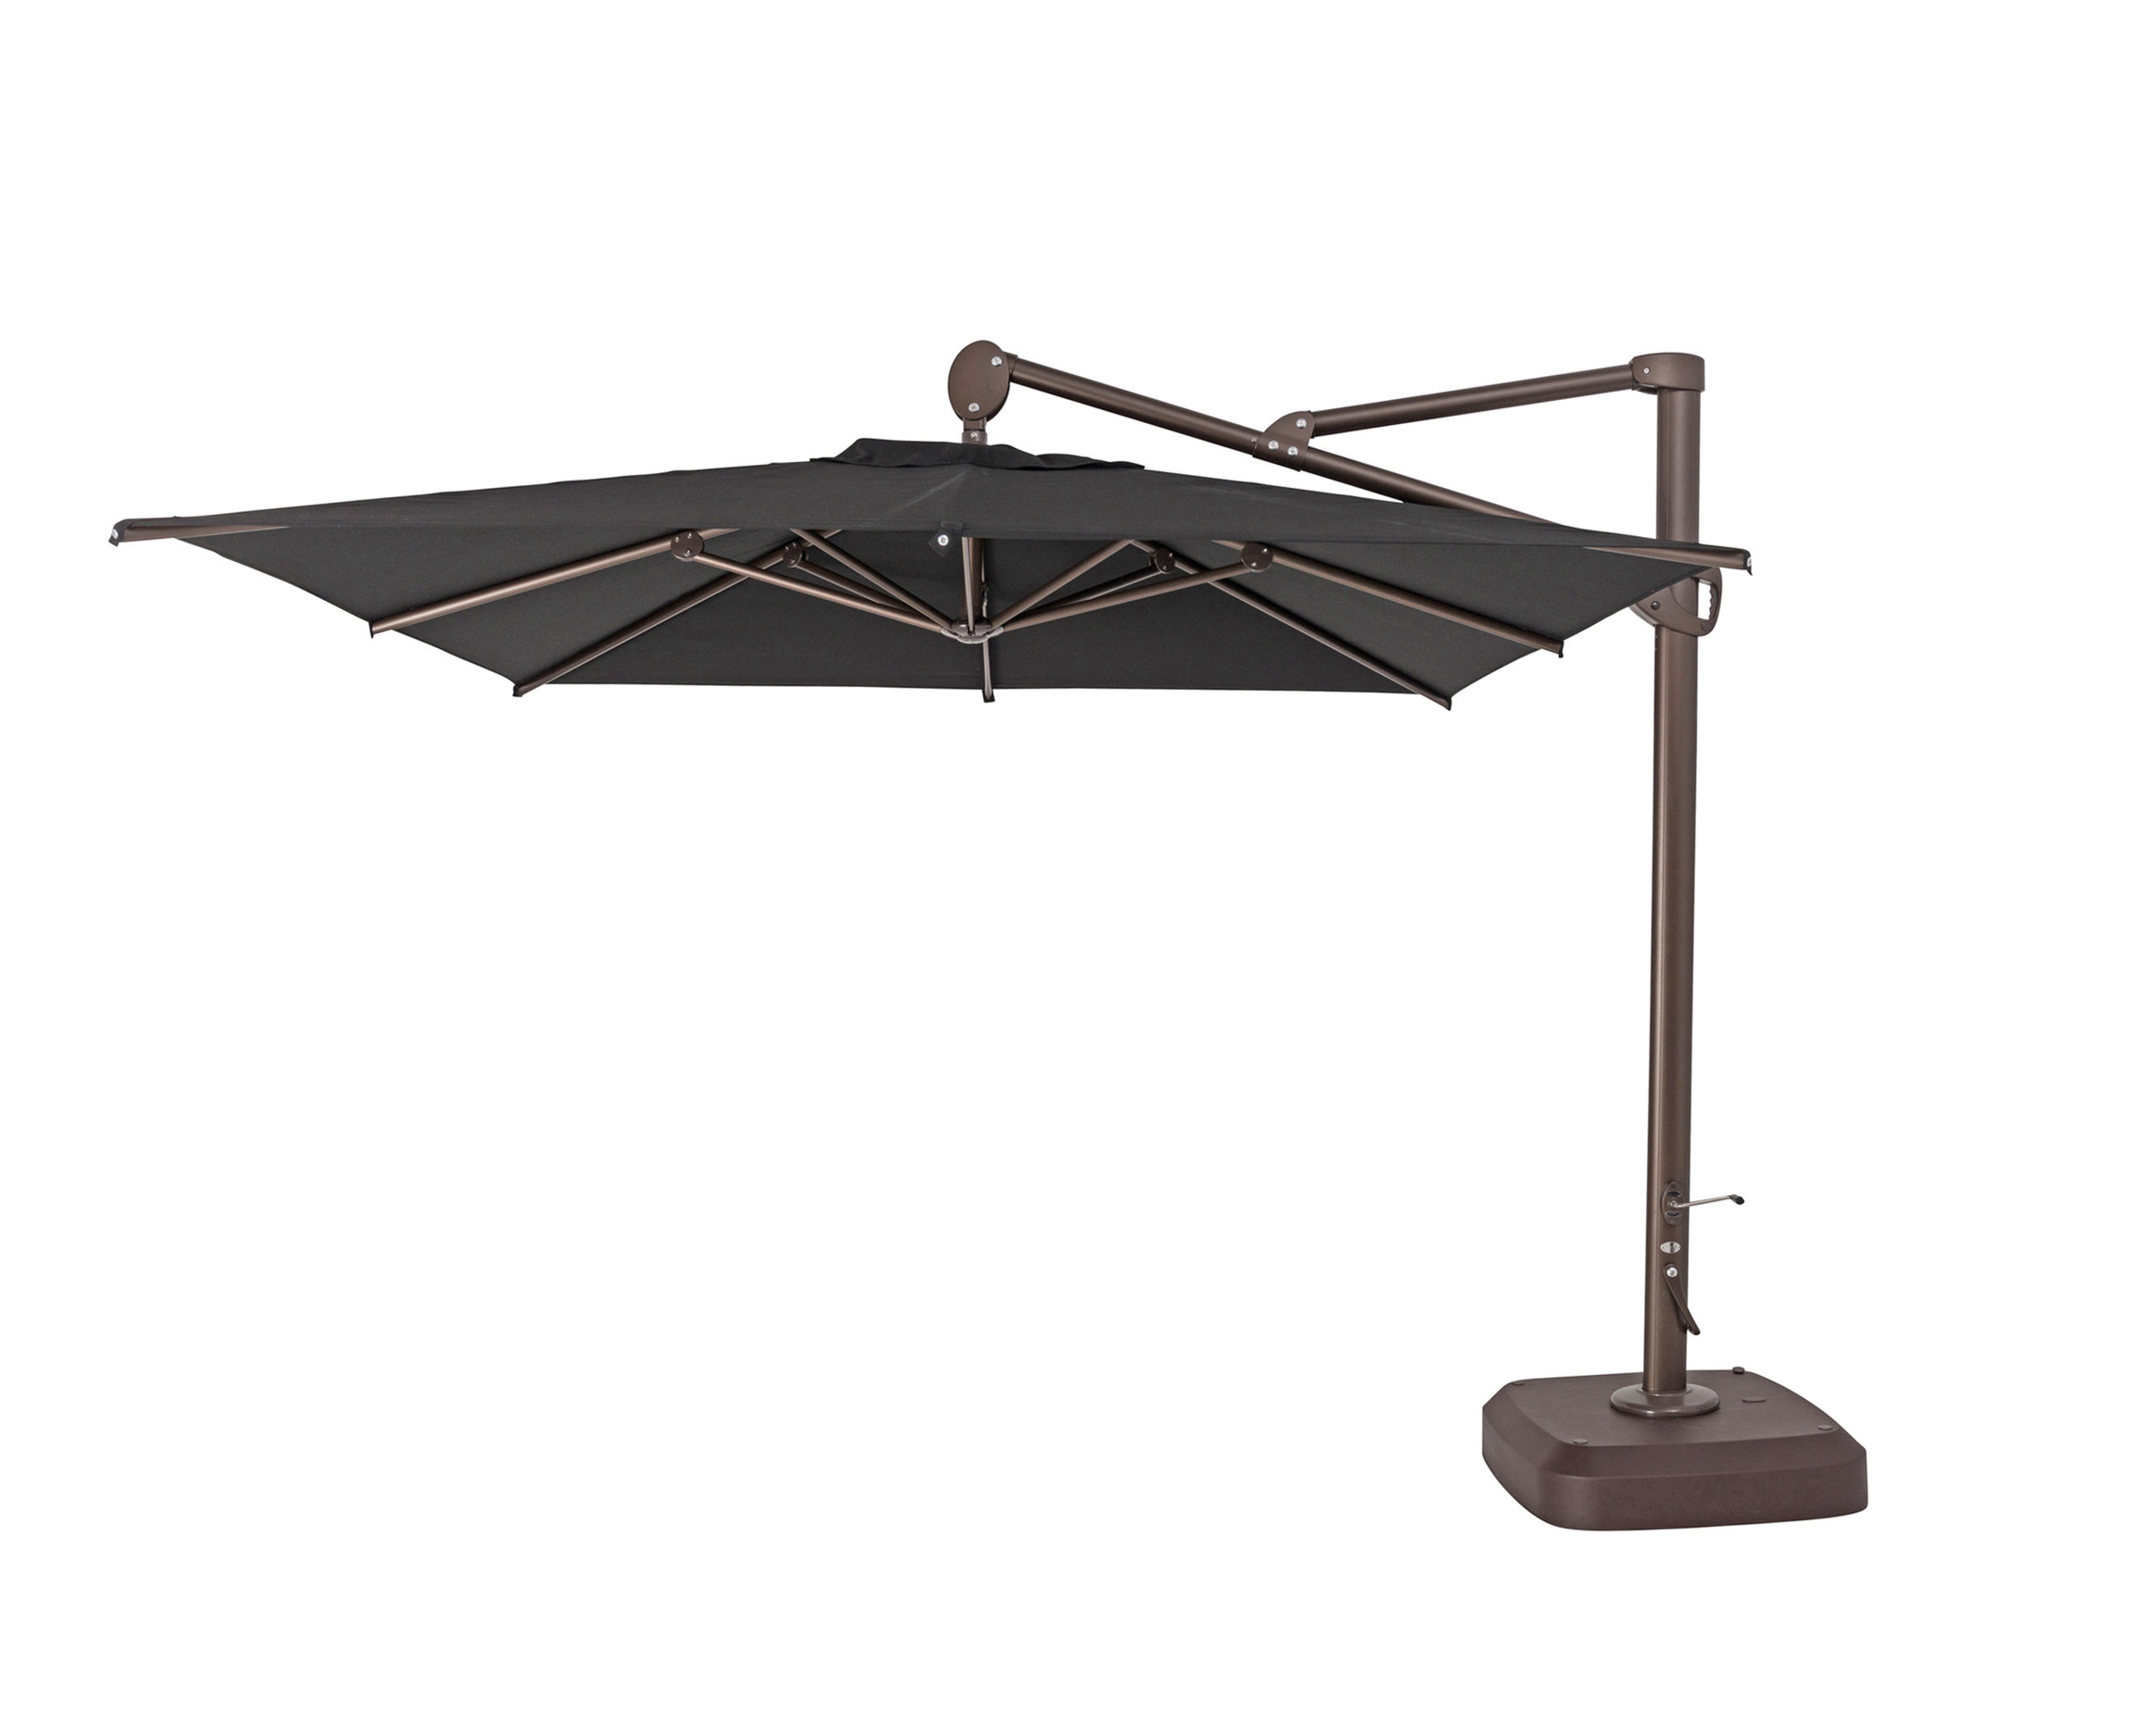 Most Current Olen Cantilever Umbrellas Regarding 10' Square Cantilever Umbrella (View 5 of 20)